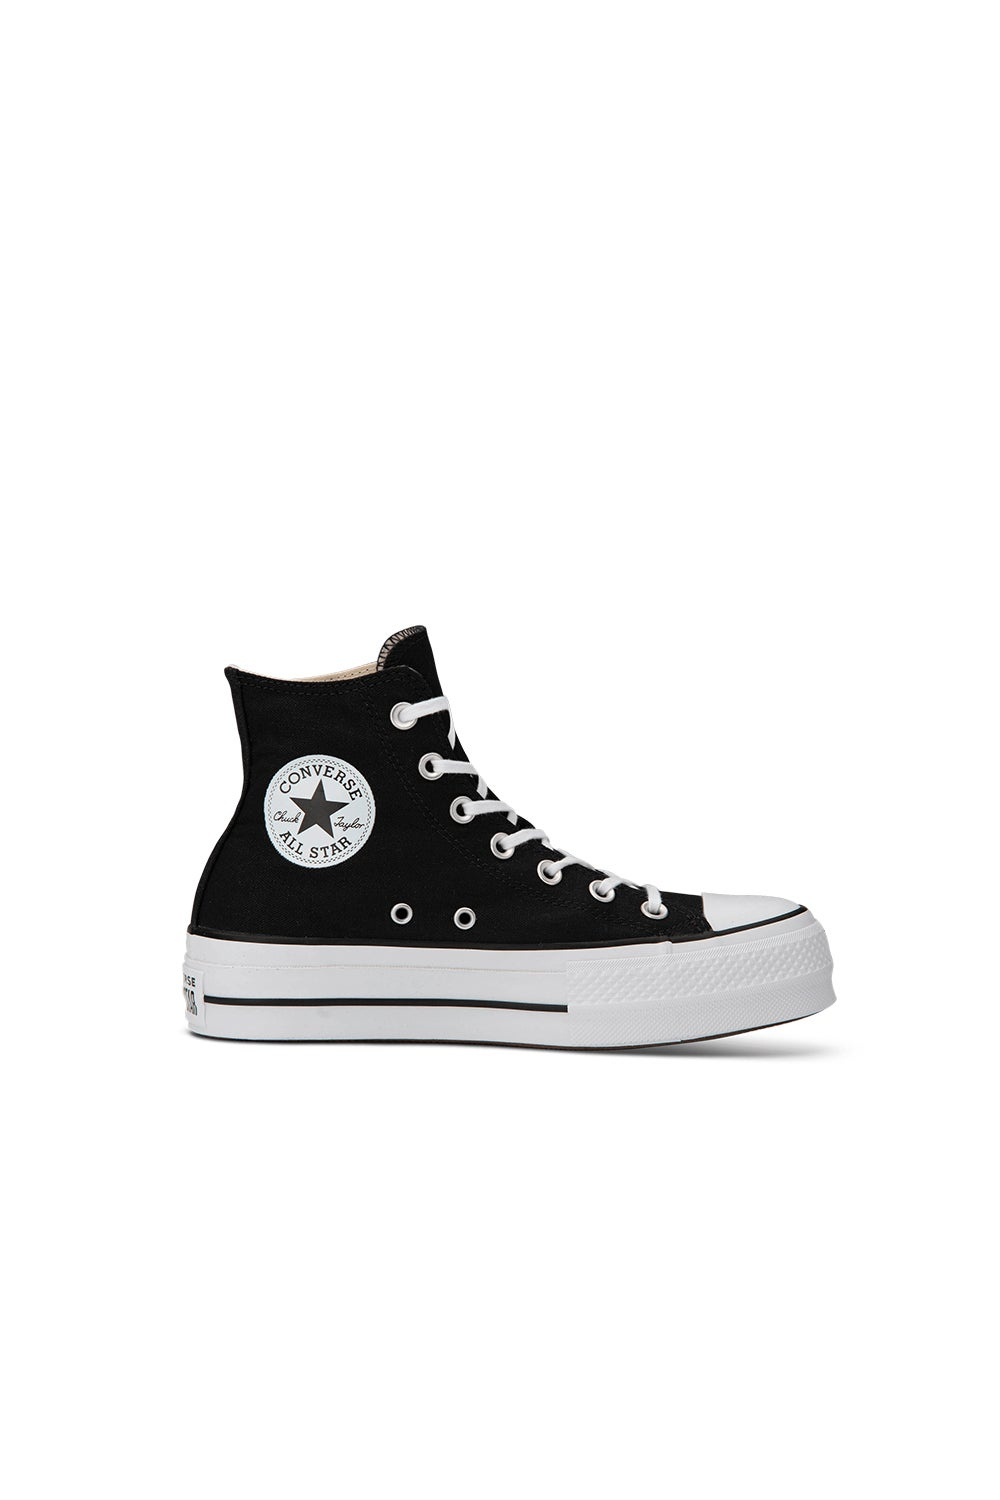 Converse Chuck Taylor All Star Lift Hi Top Black